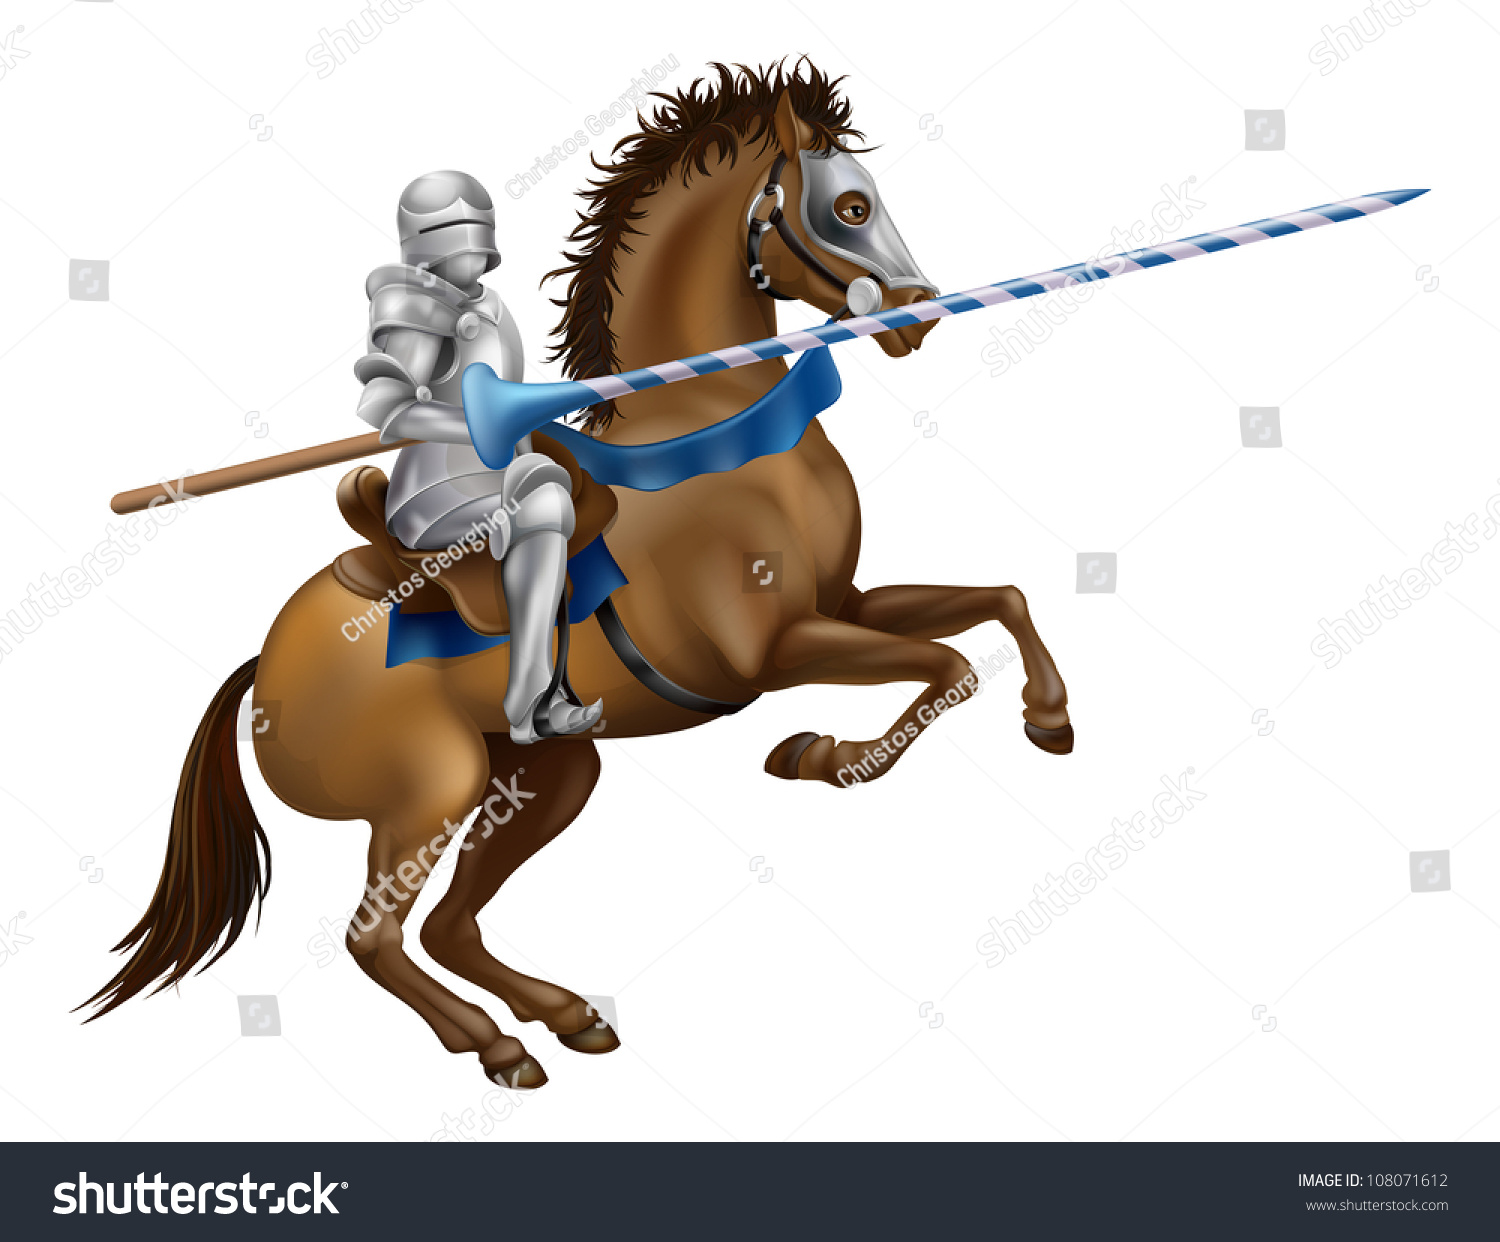 Drawing Of A Jousting Knight In Armour On Horse Back